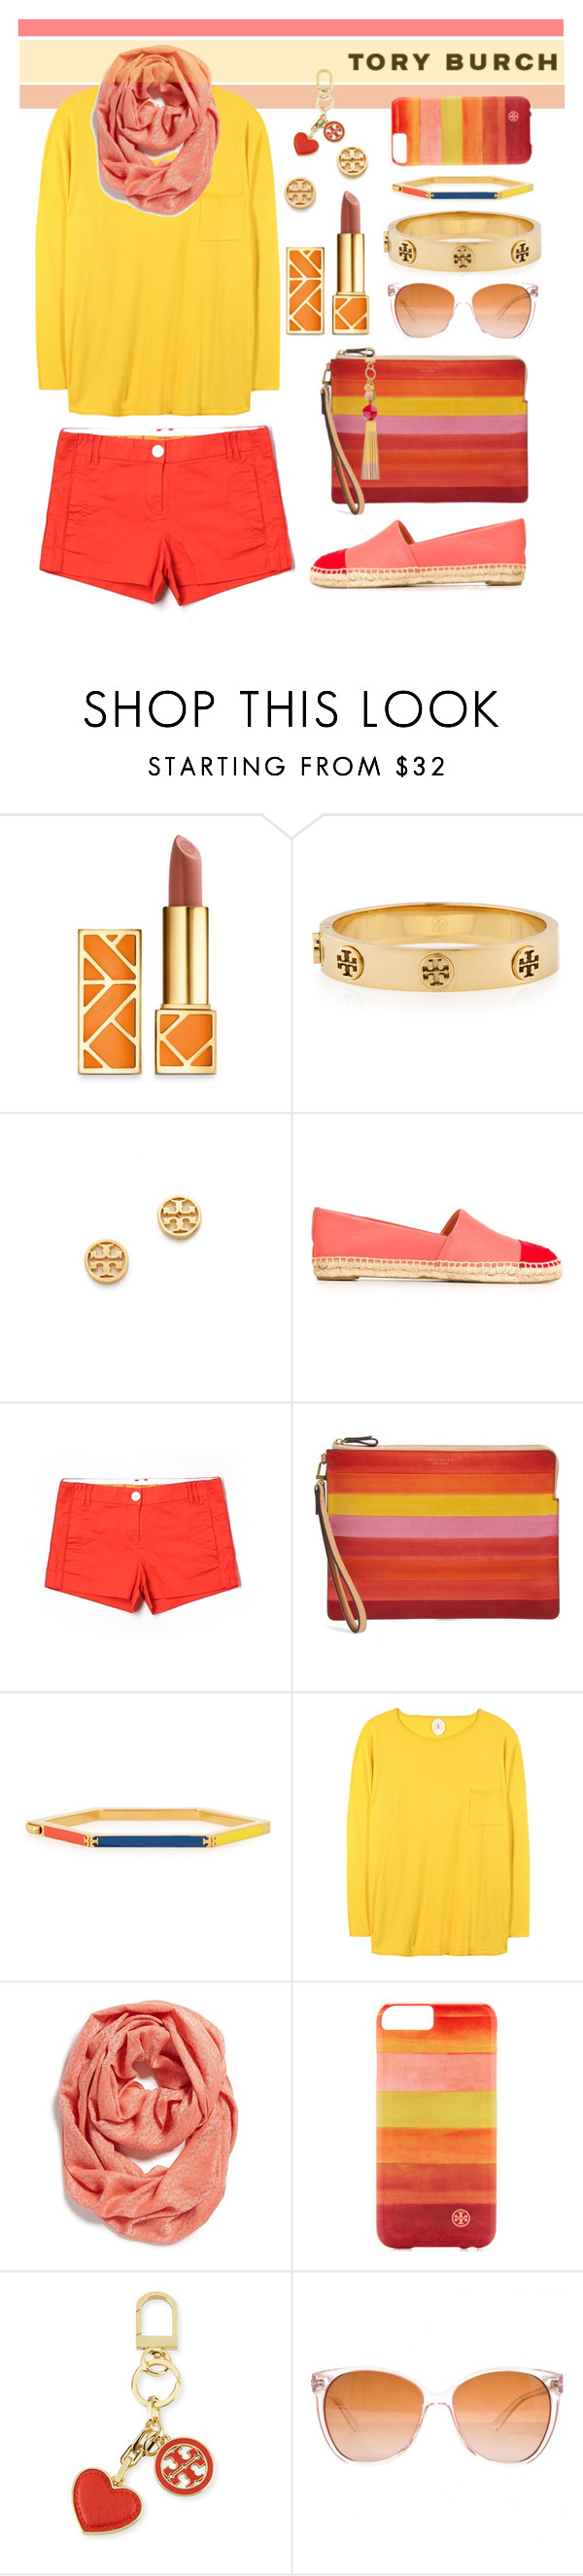 """Tory Burch"" by youaresofashion ❤ liked on Polyvore featuring Tory Burch, Jardin des Orangers and logomania"